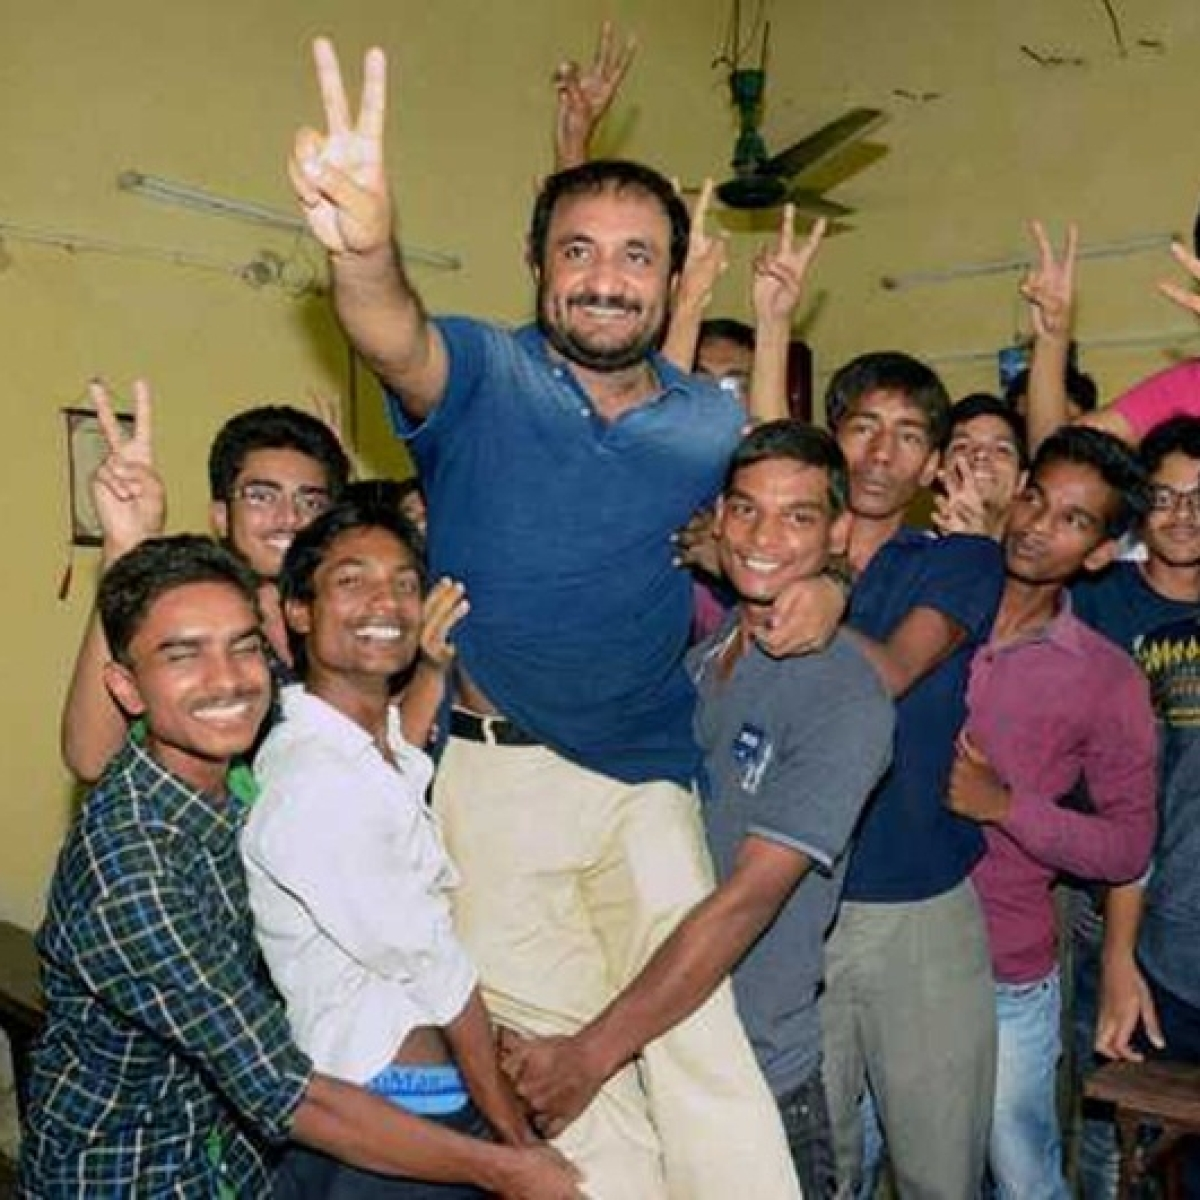 Crab mentality exists in small towns: Super 30's Anand Kumar